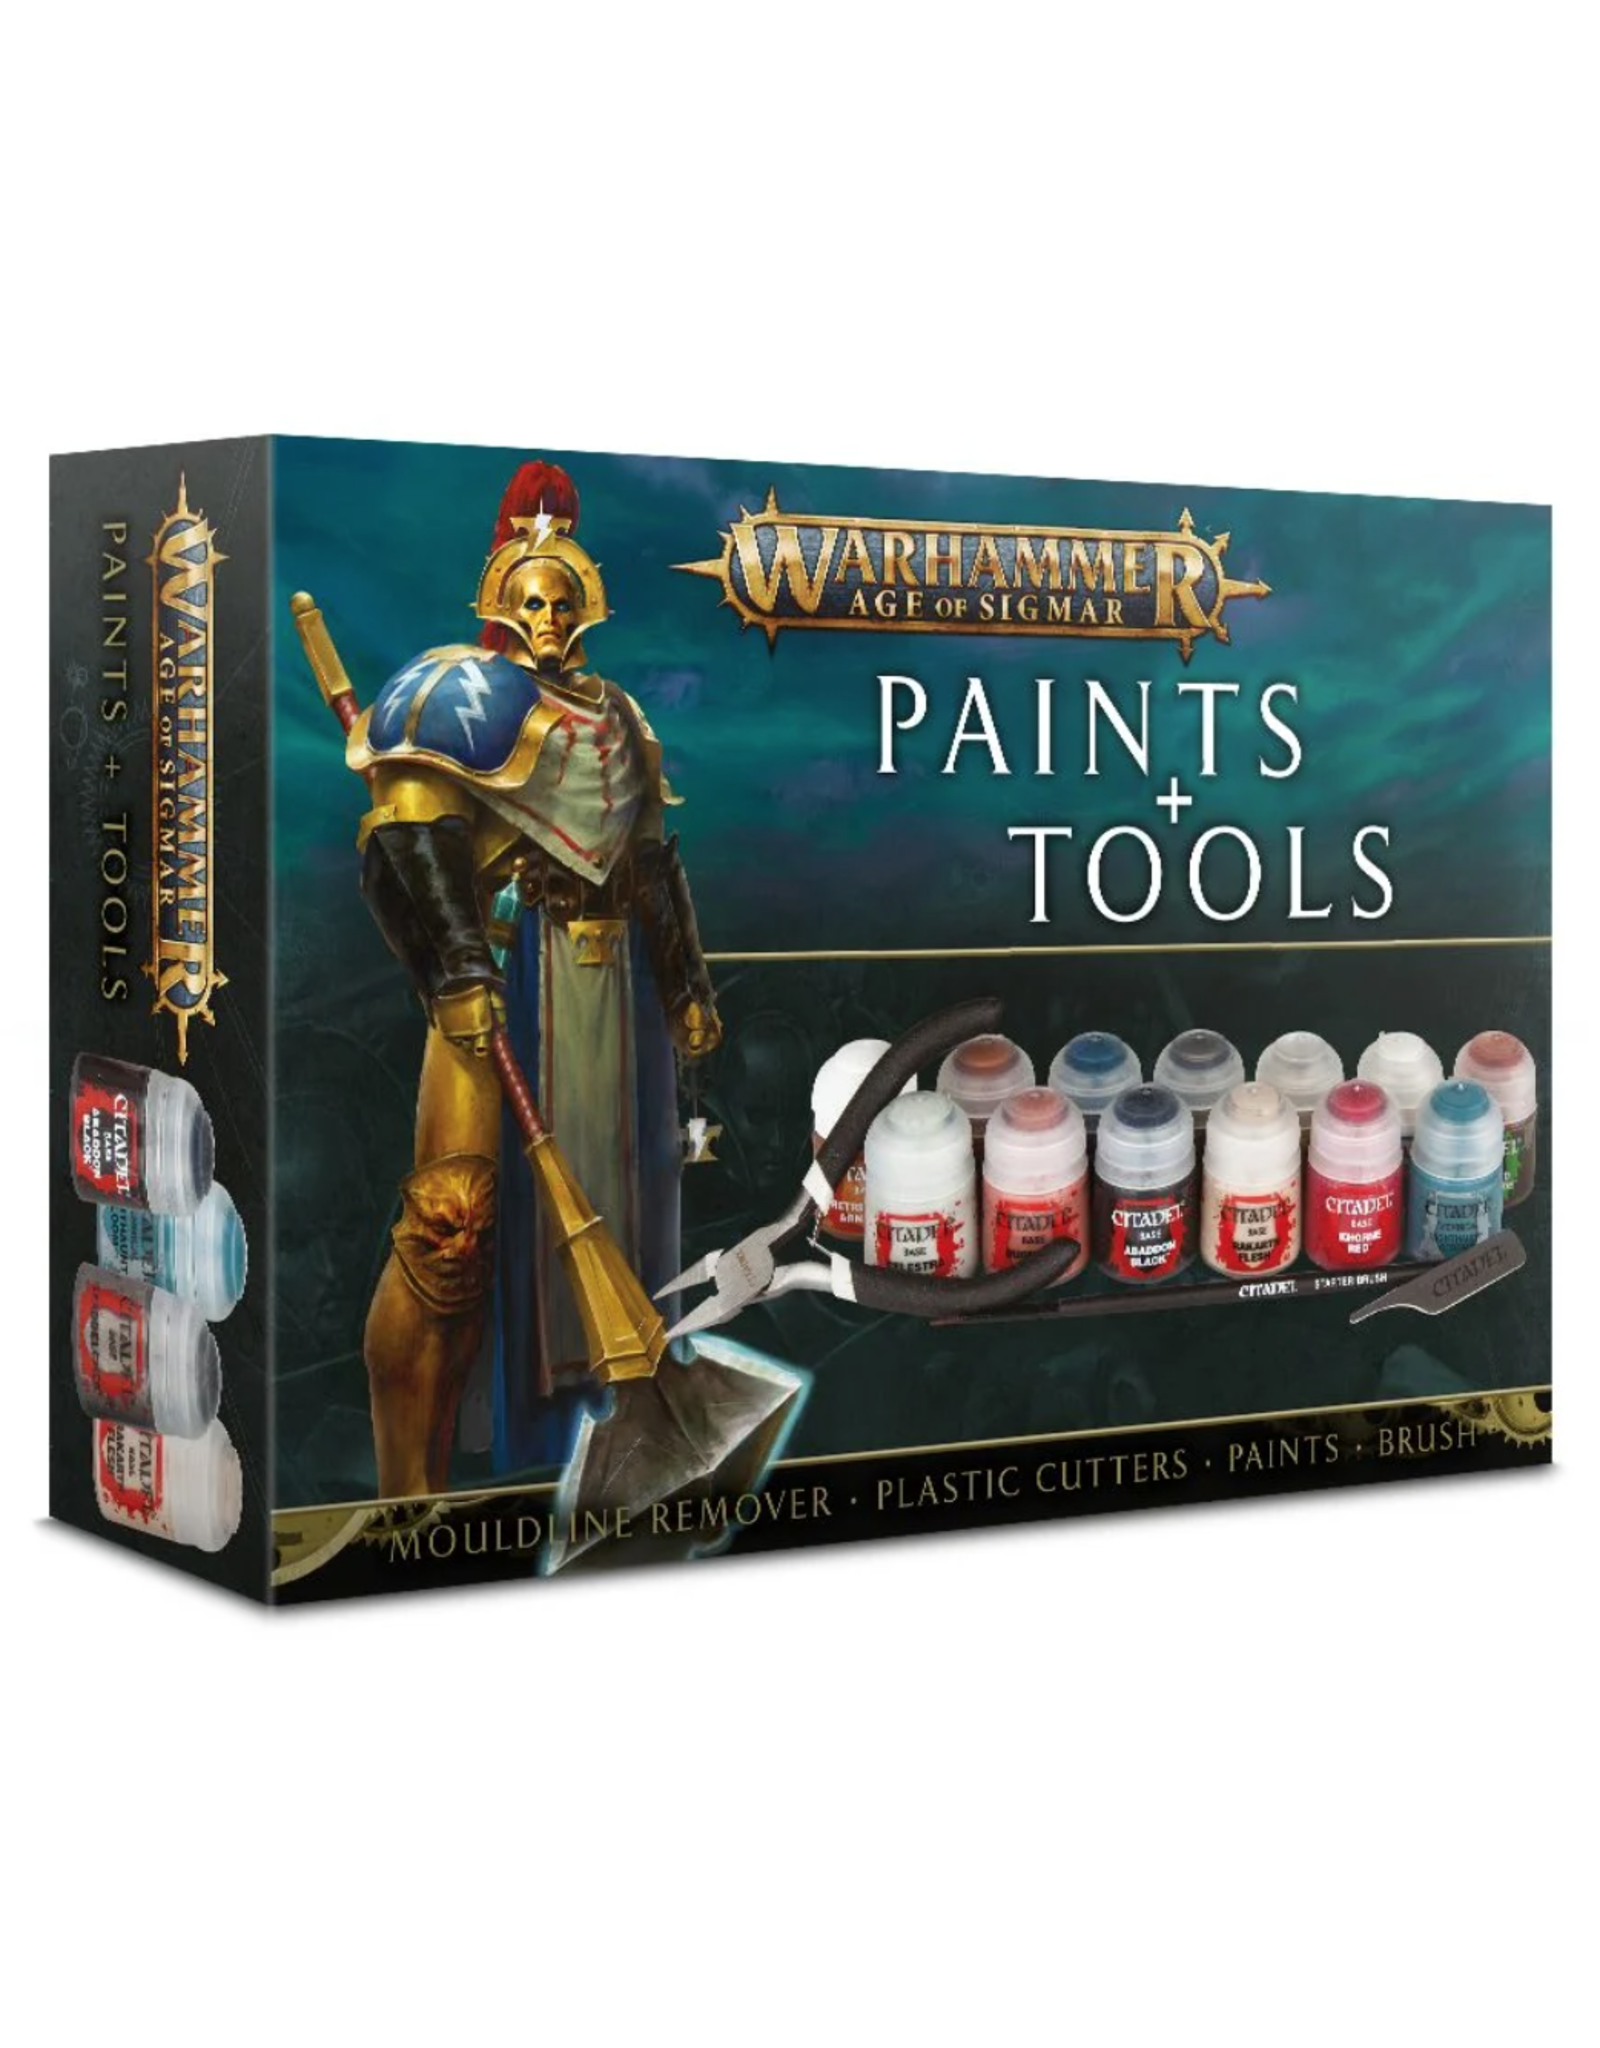 Age of Sigmar Warhammer Age of Sigmar Paints + Tools